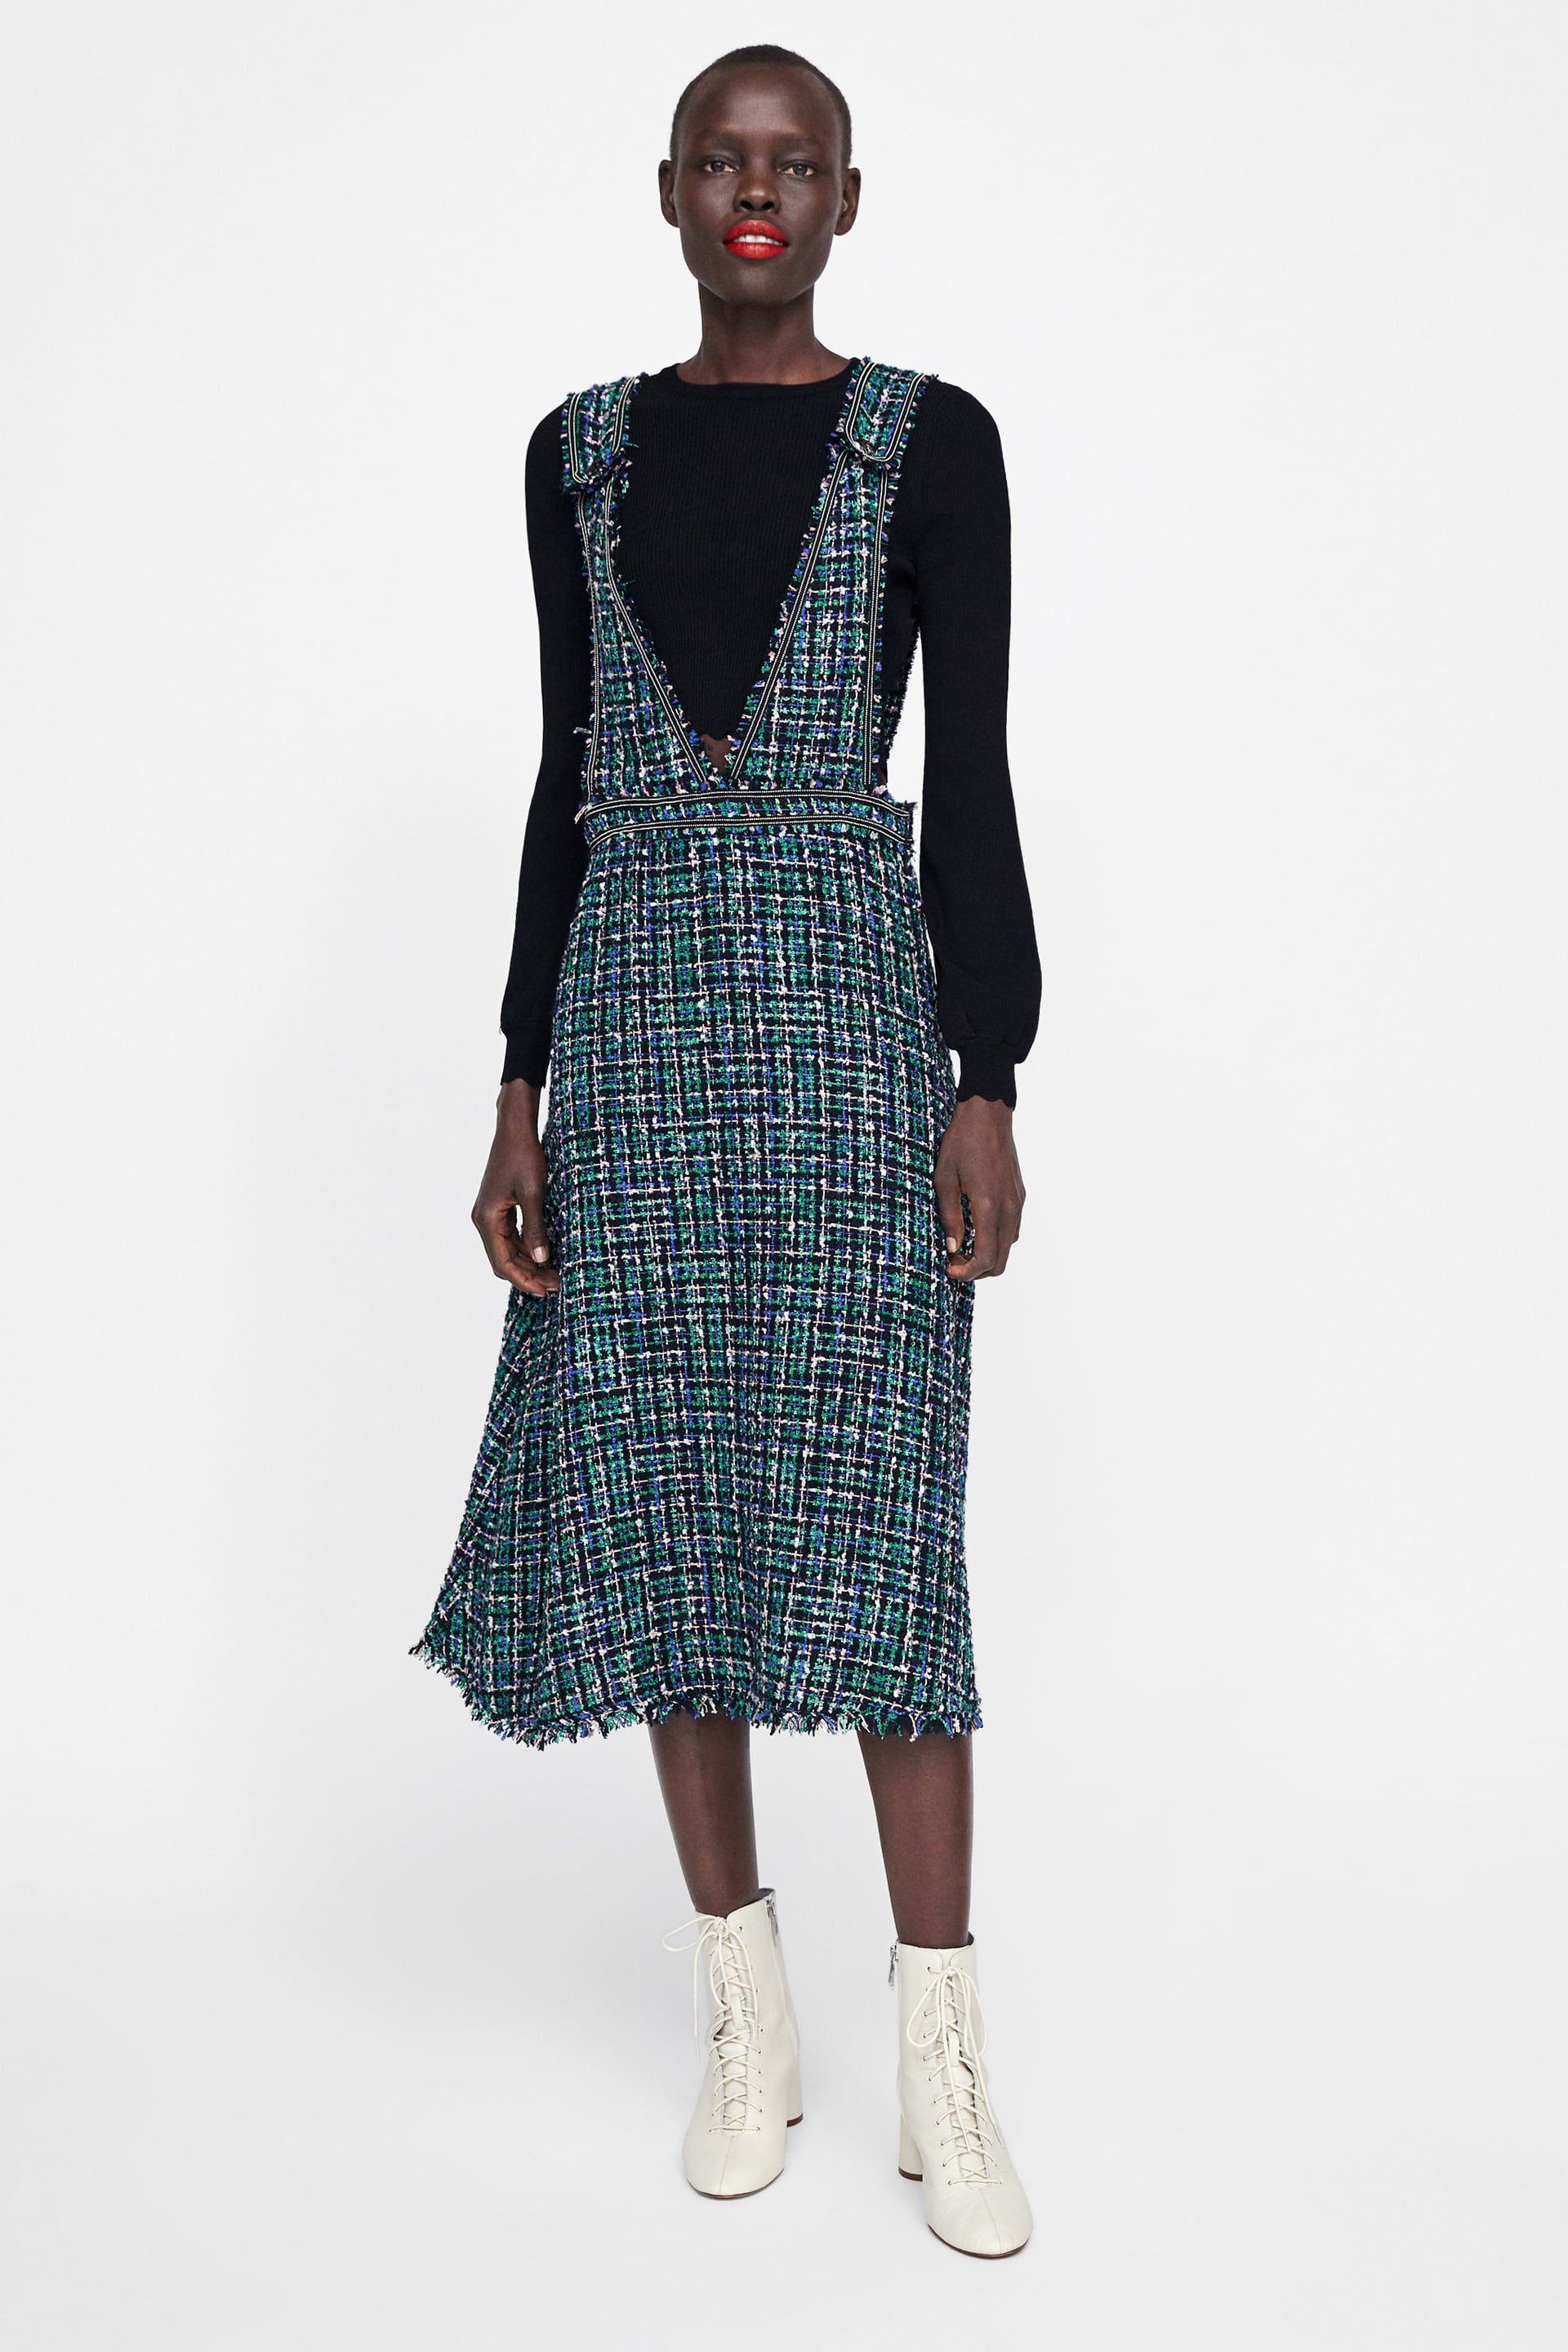 869a1011a31a Tweed overall dress in 2019 | My Style | Overall dress, Pinafore ...